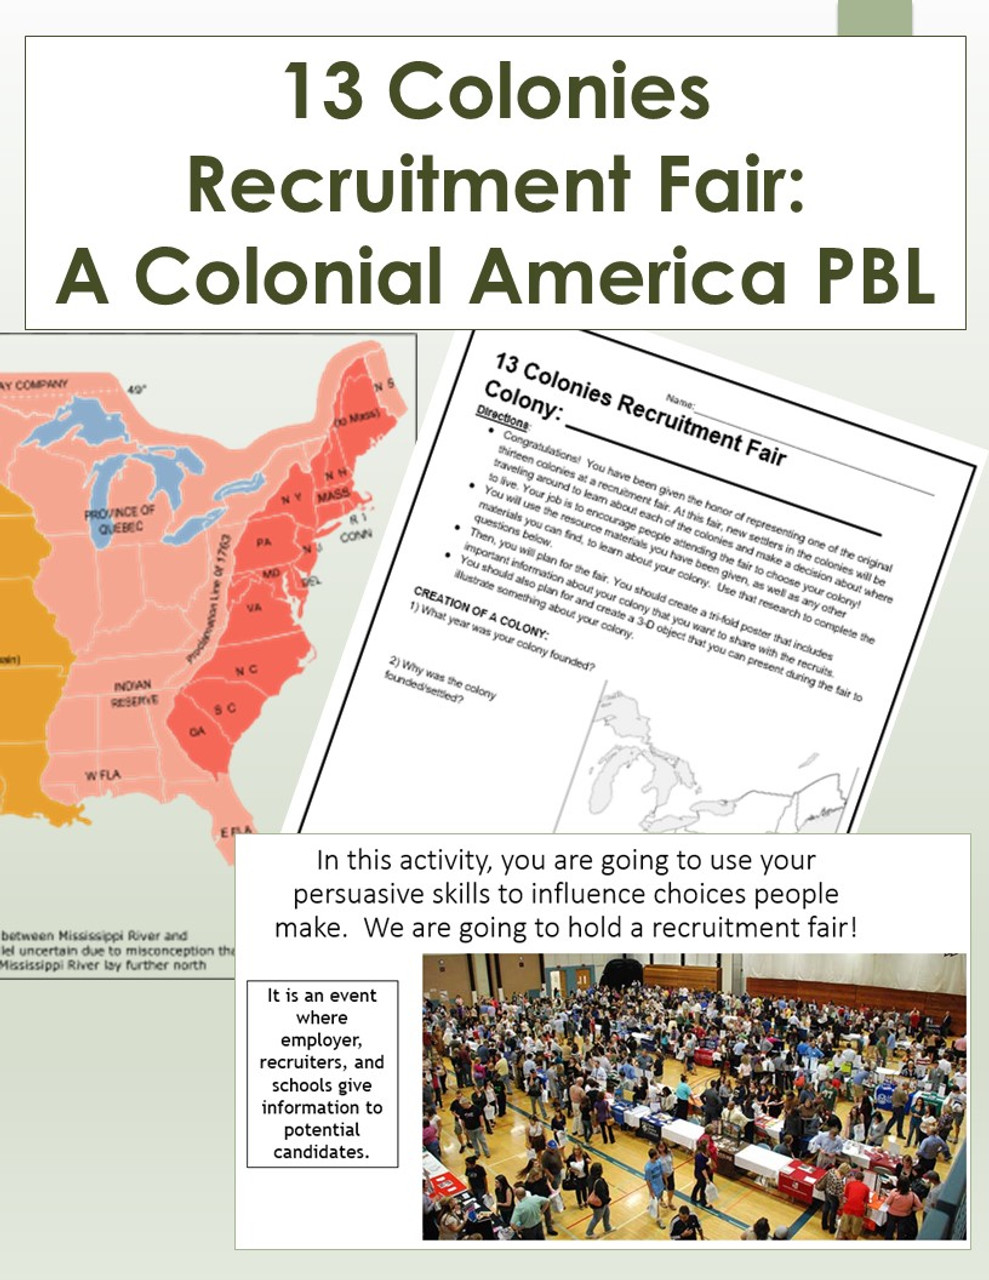 13 Colonies Recruitment Fair: A Colonial America PBL